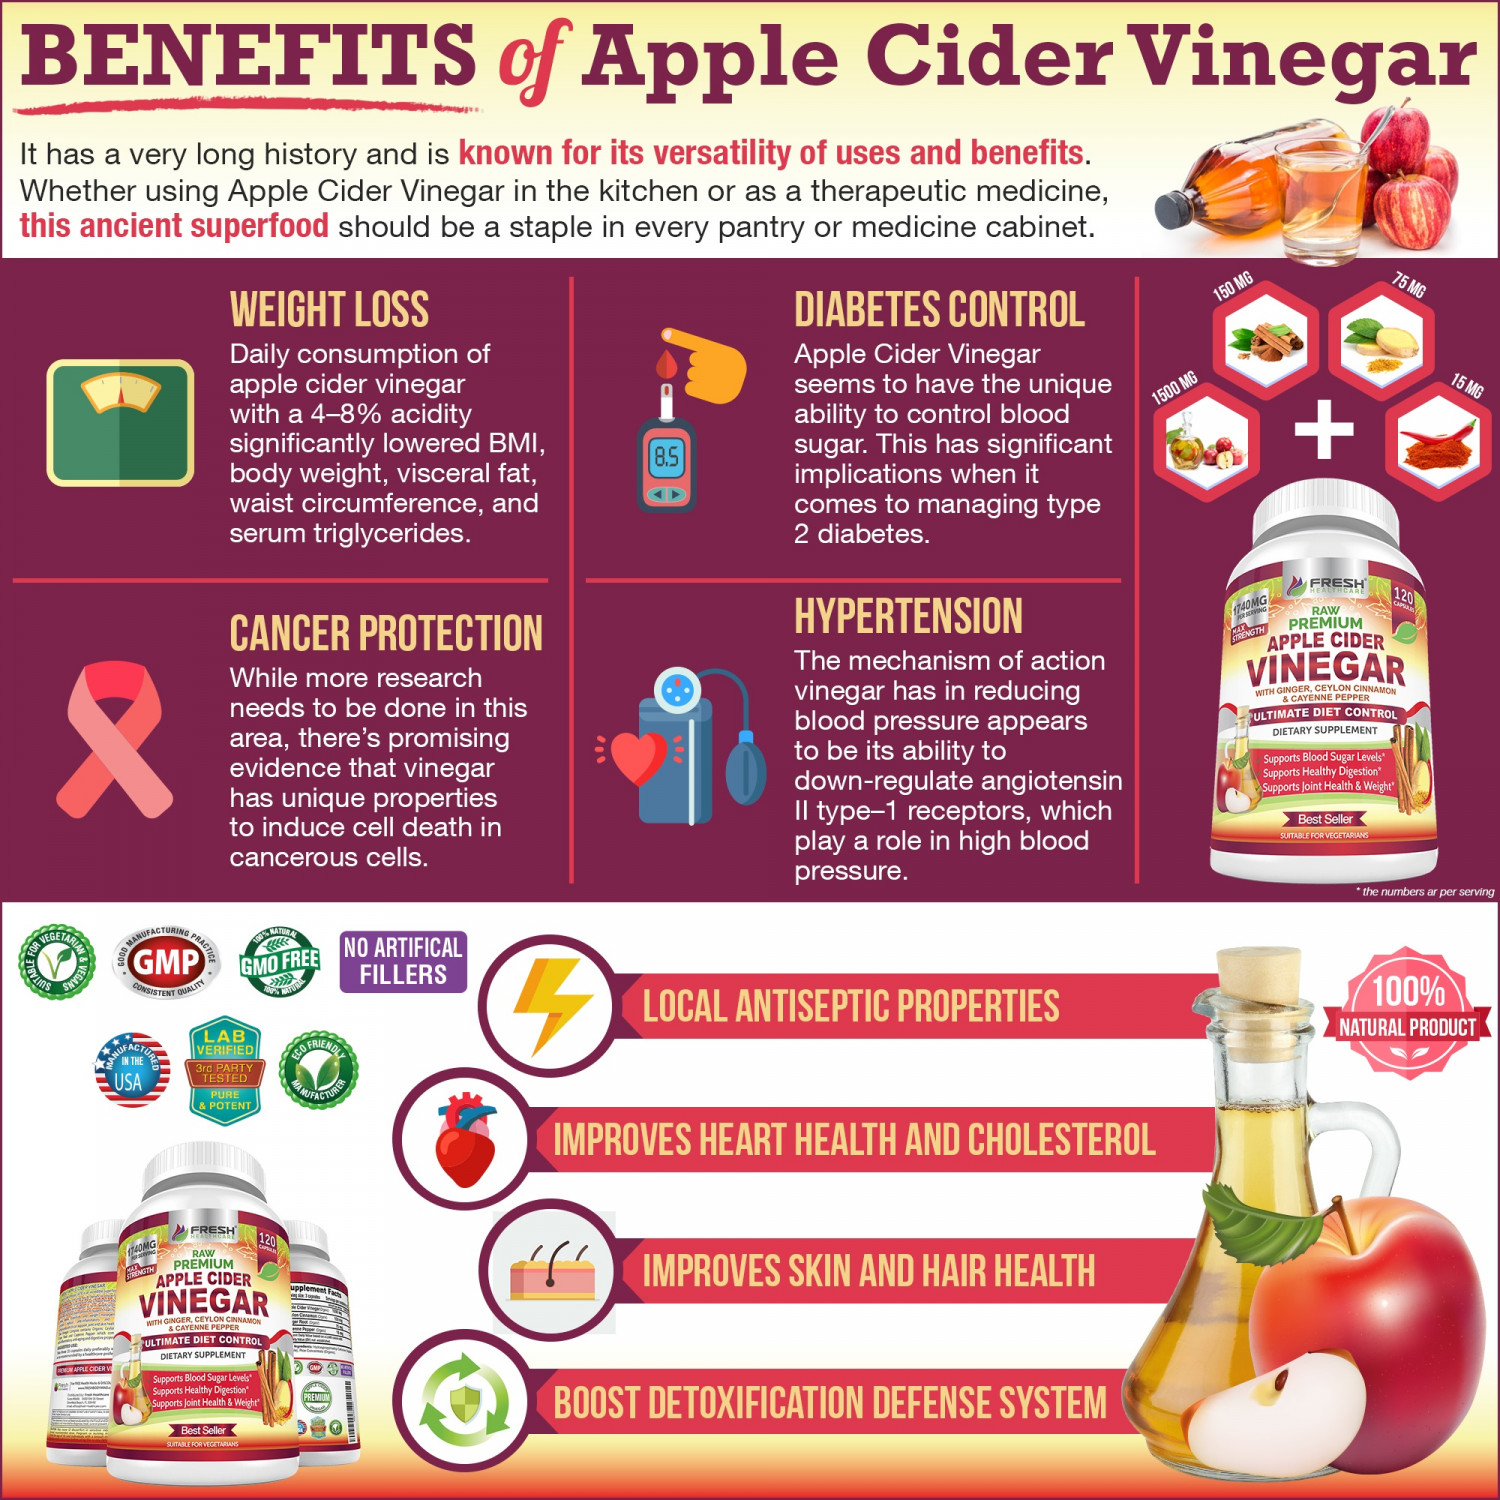 The Definitive Guide to the Benefits of Apple Cider Vinegar Infographic